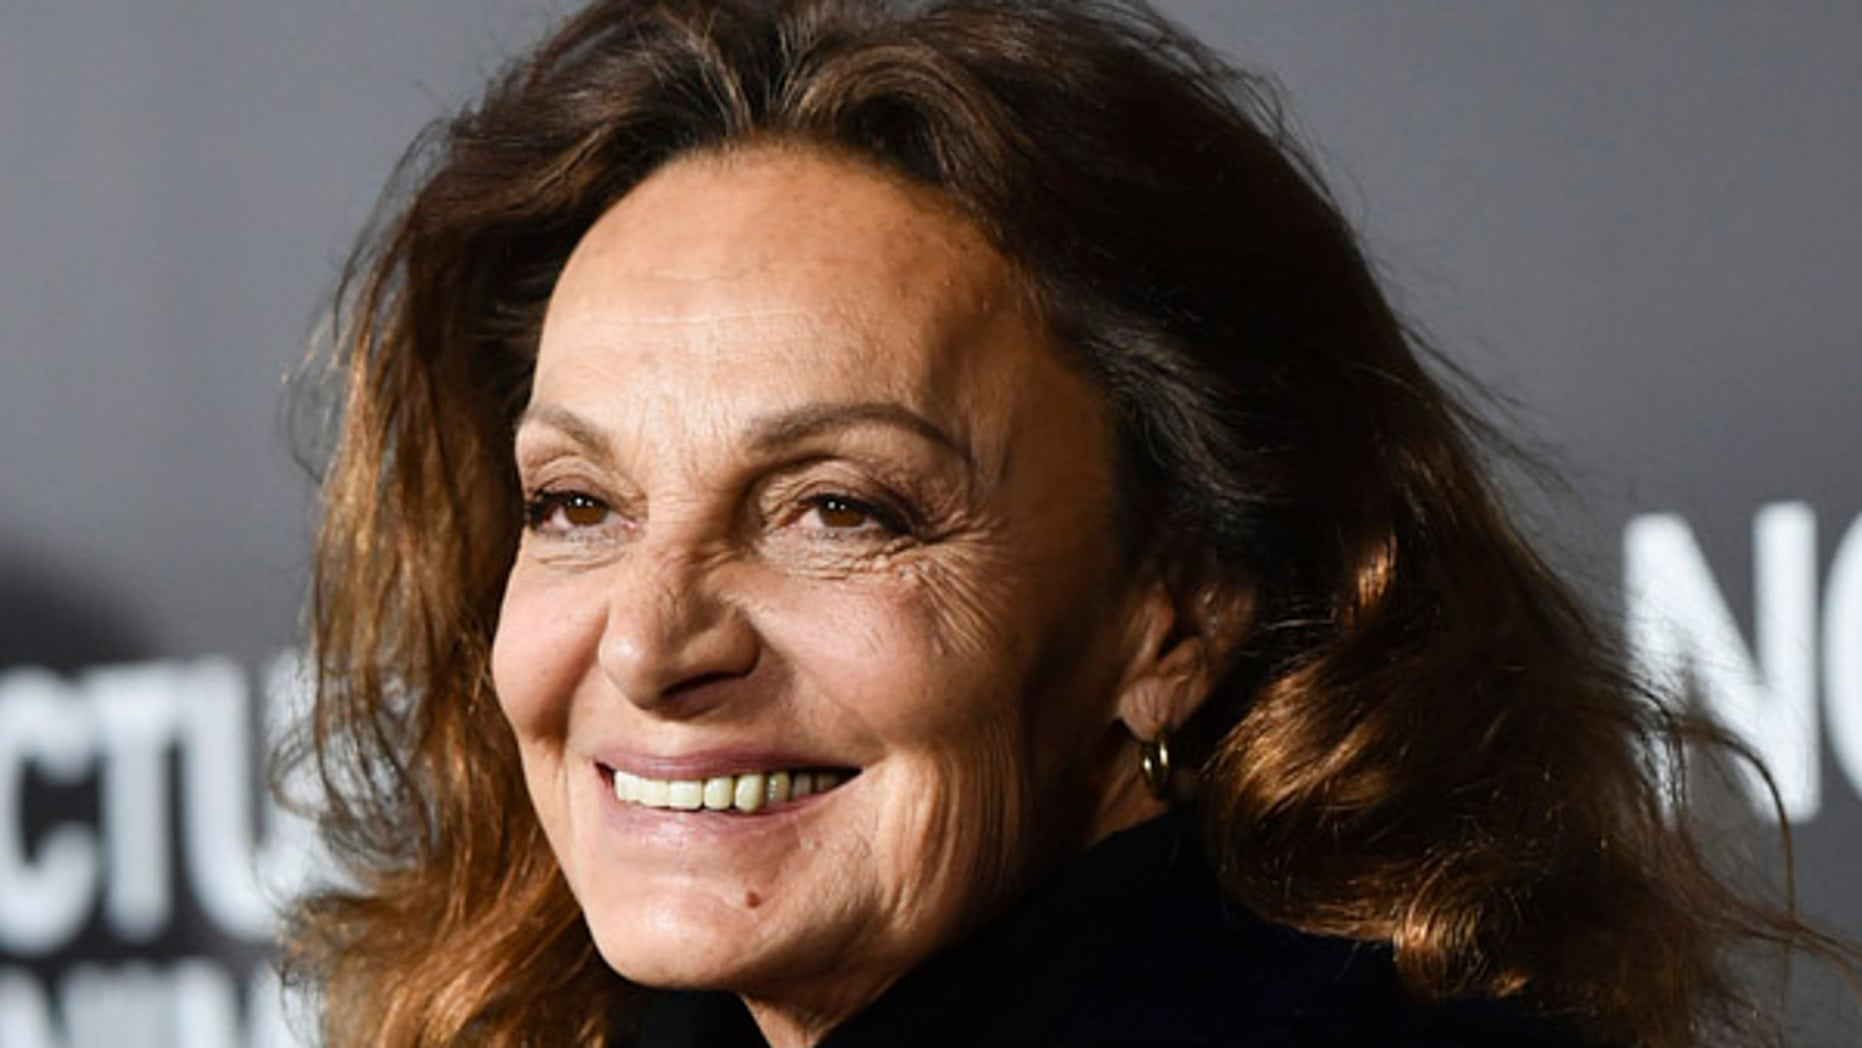 Diane von Furstenberg is seen in this file photo.